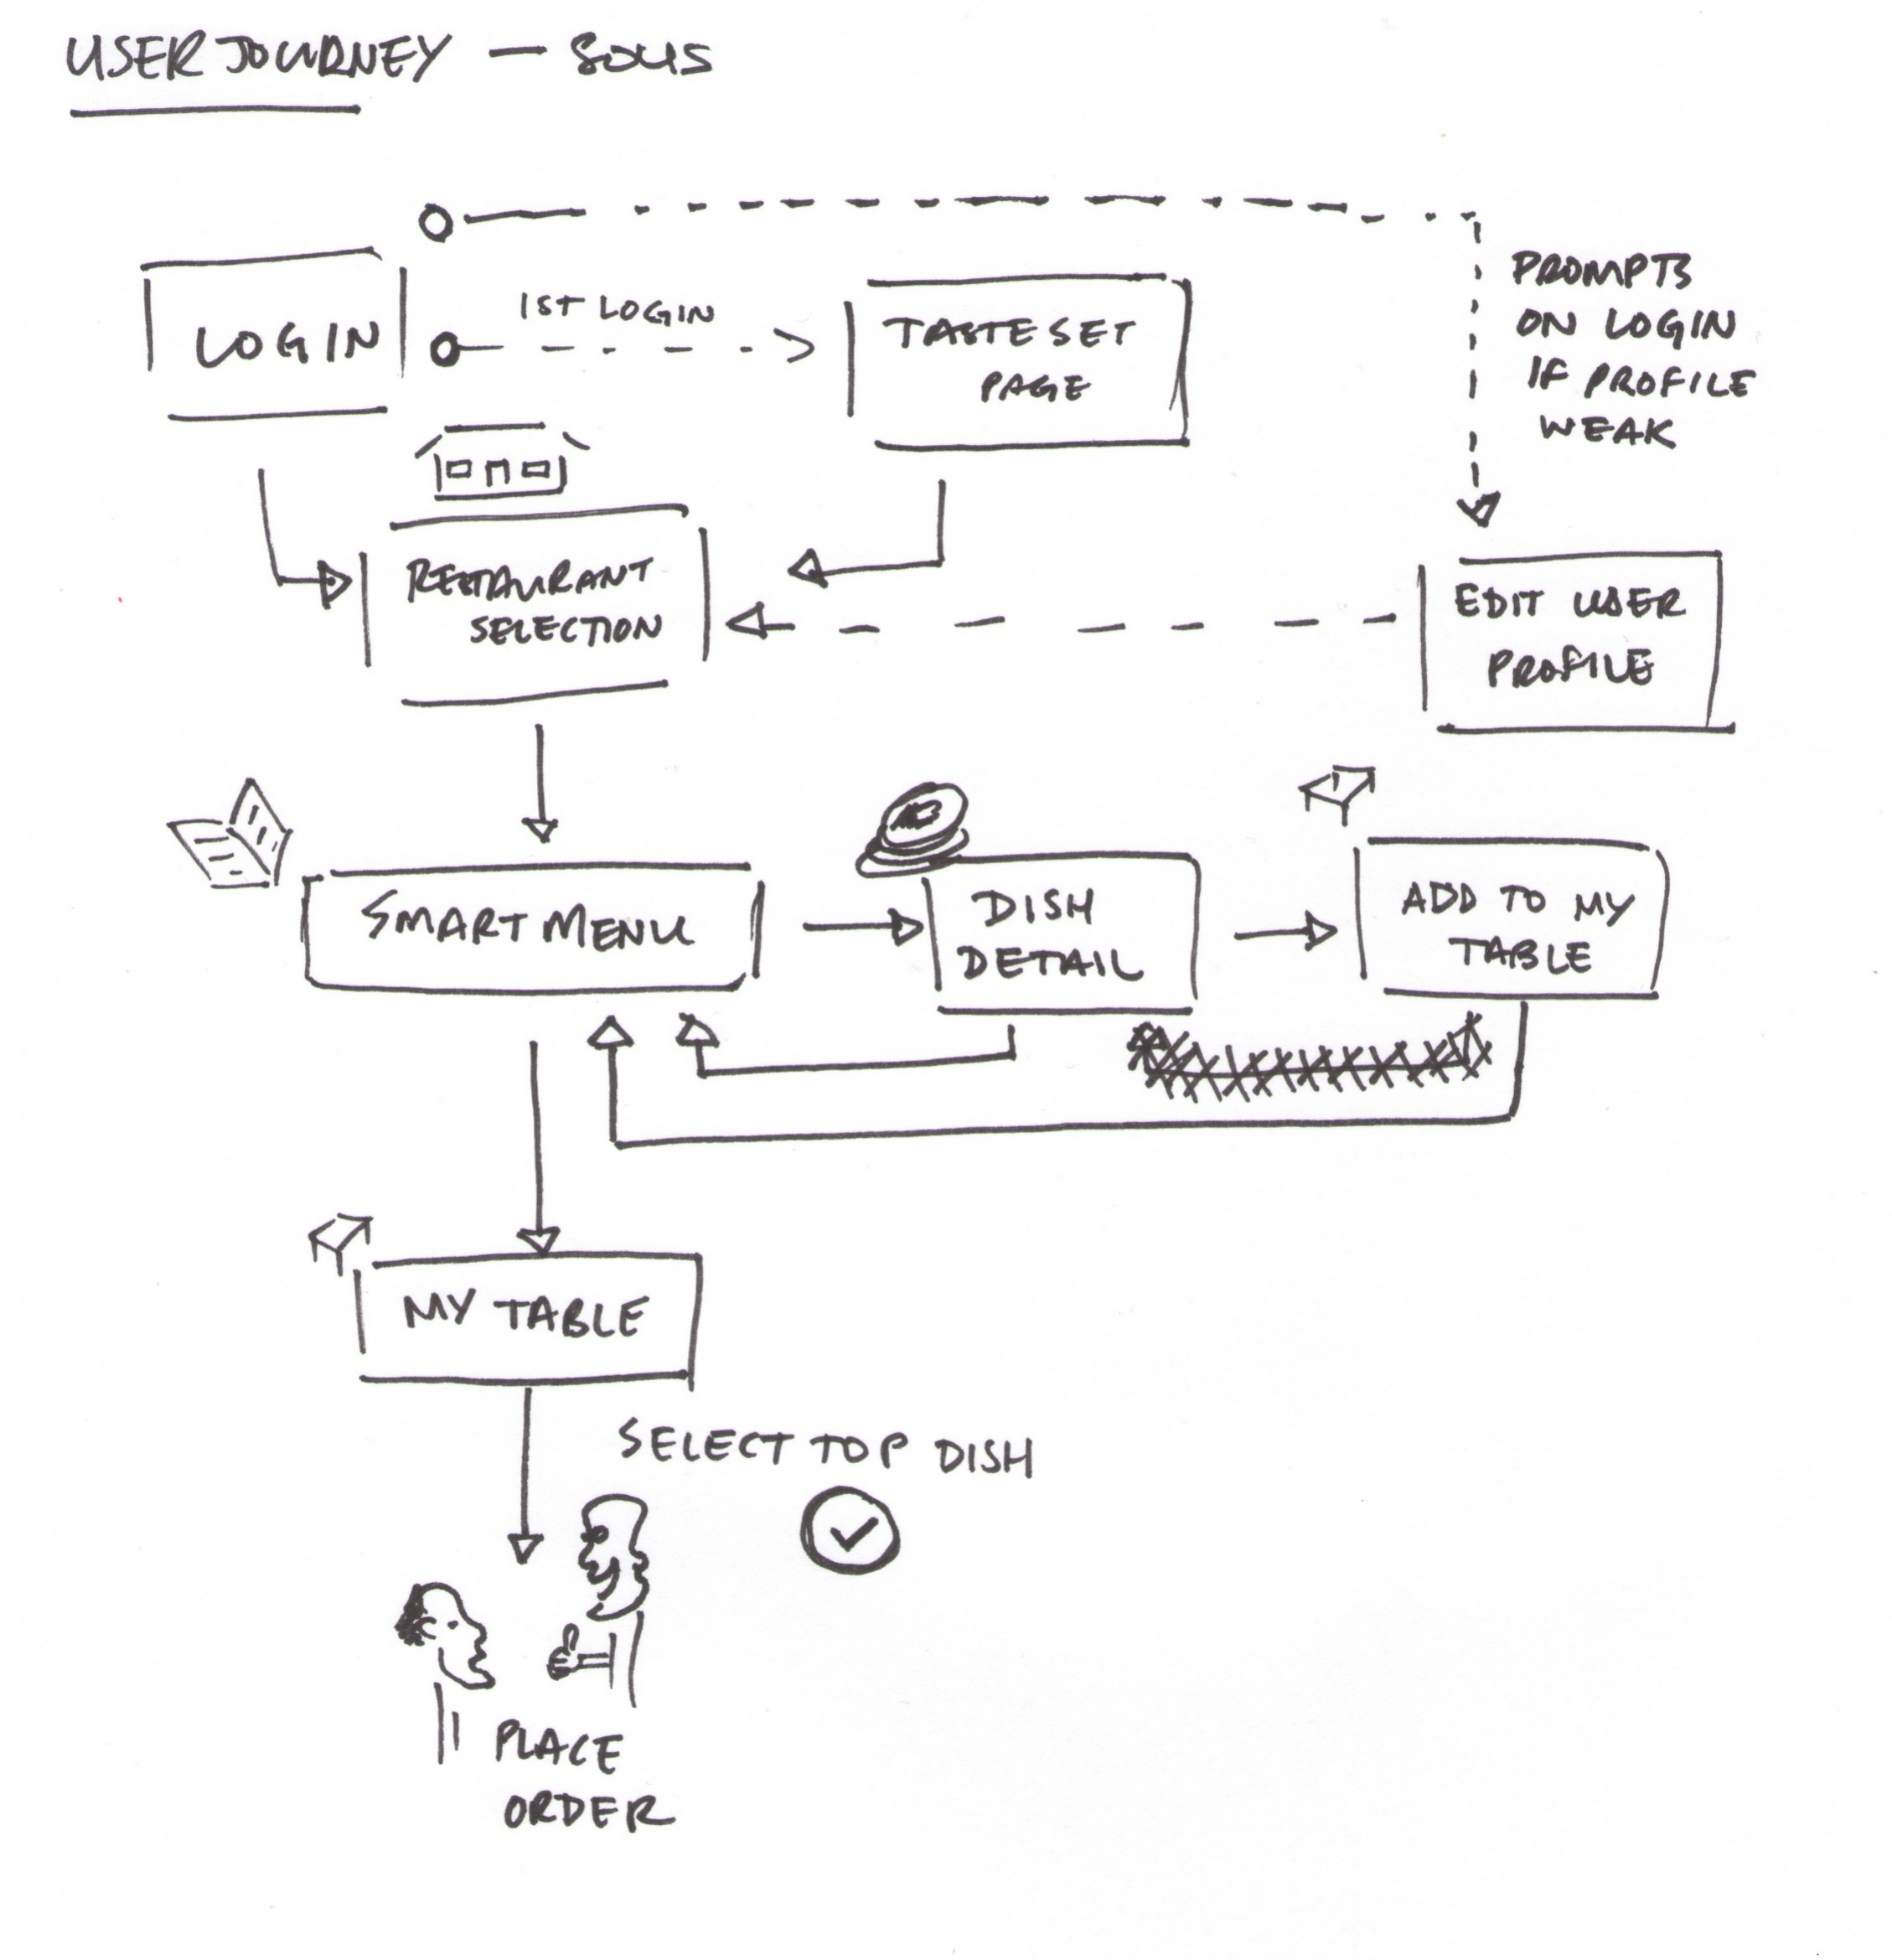 SOUS Basic User Journey v1.jpg